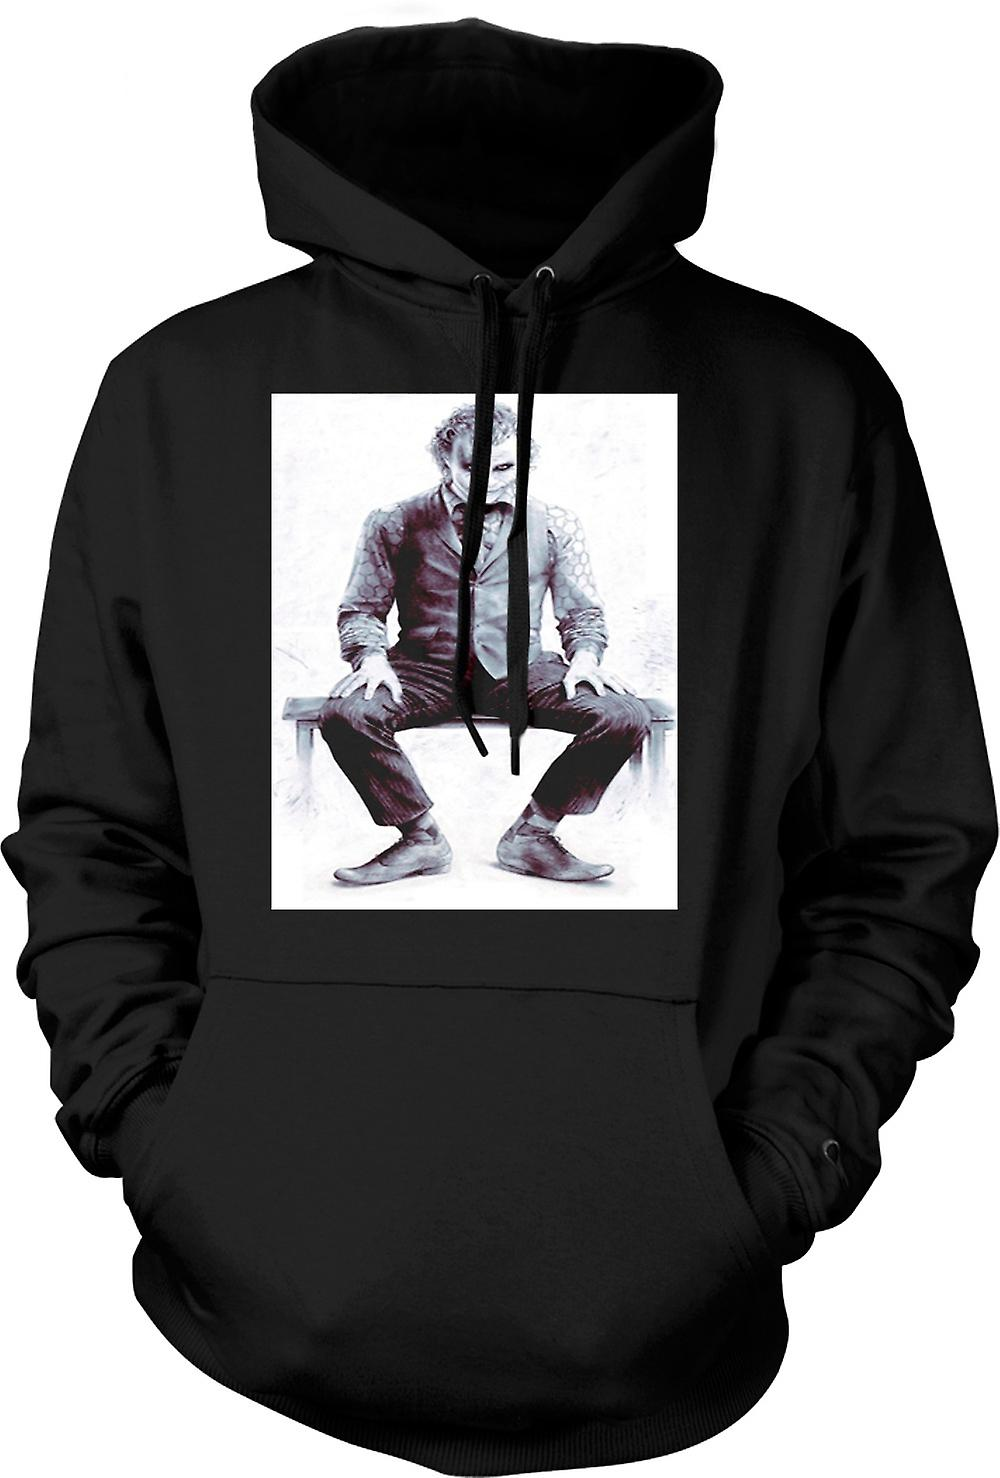 Mens Hoodie - Joker Sitting - Batman